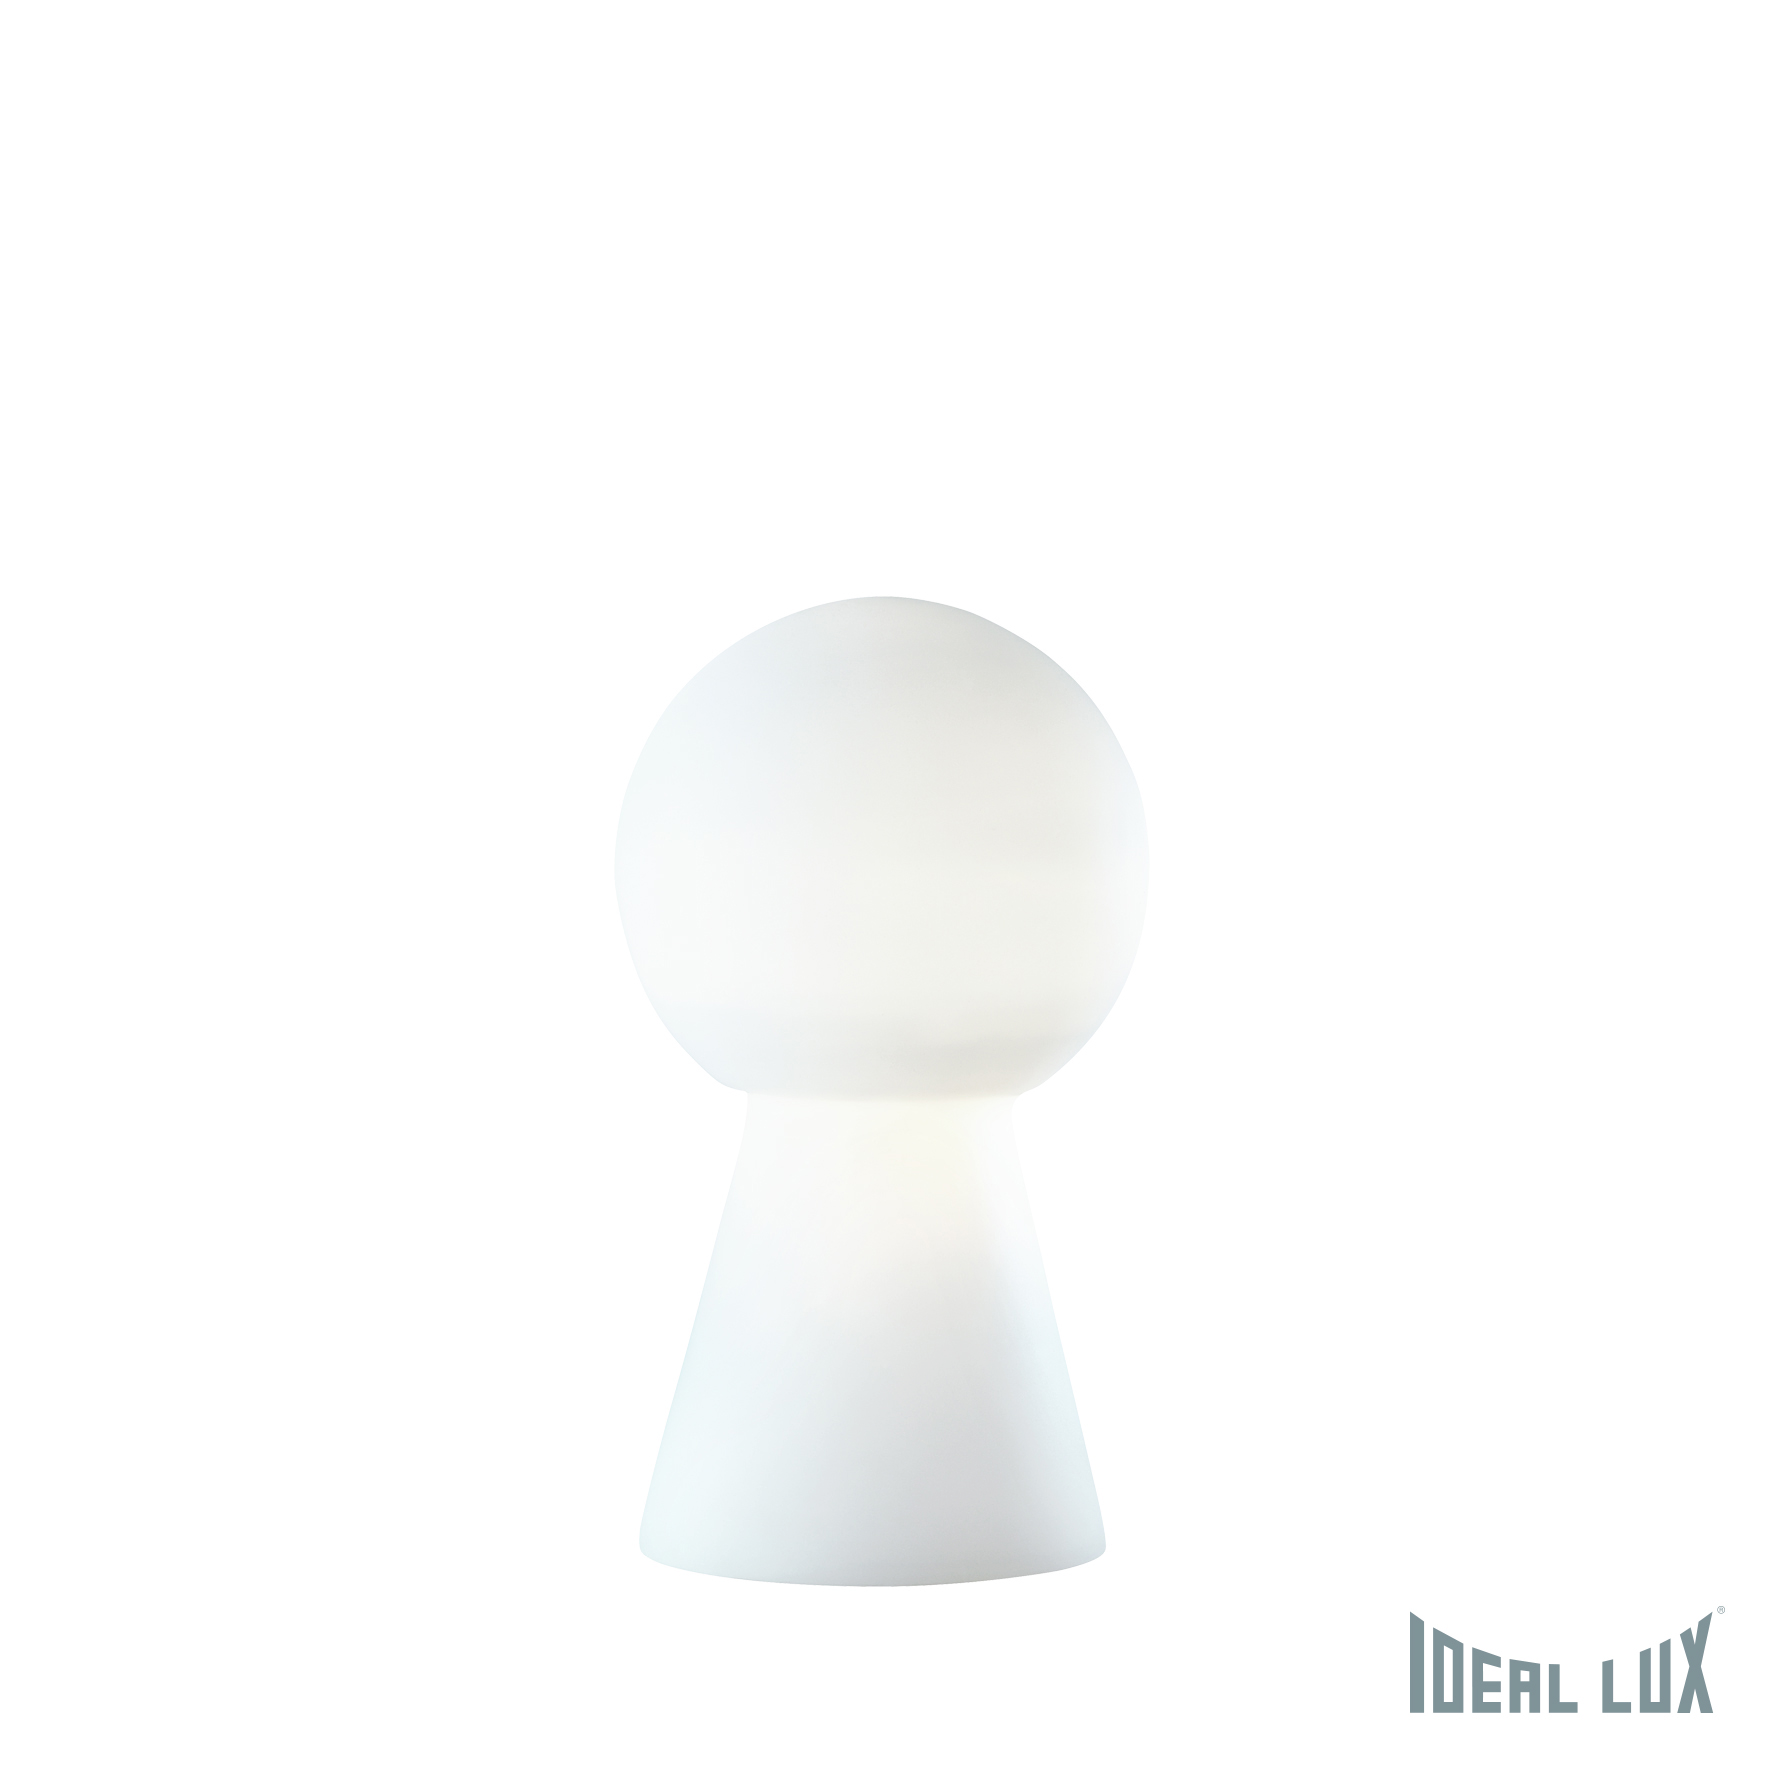 Настольная лампа Ideal Lux Birillo BIRILLO TL1 MEDIUM BIANCO настольная лампа ideal lux birillo tl1 small fume 116570